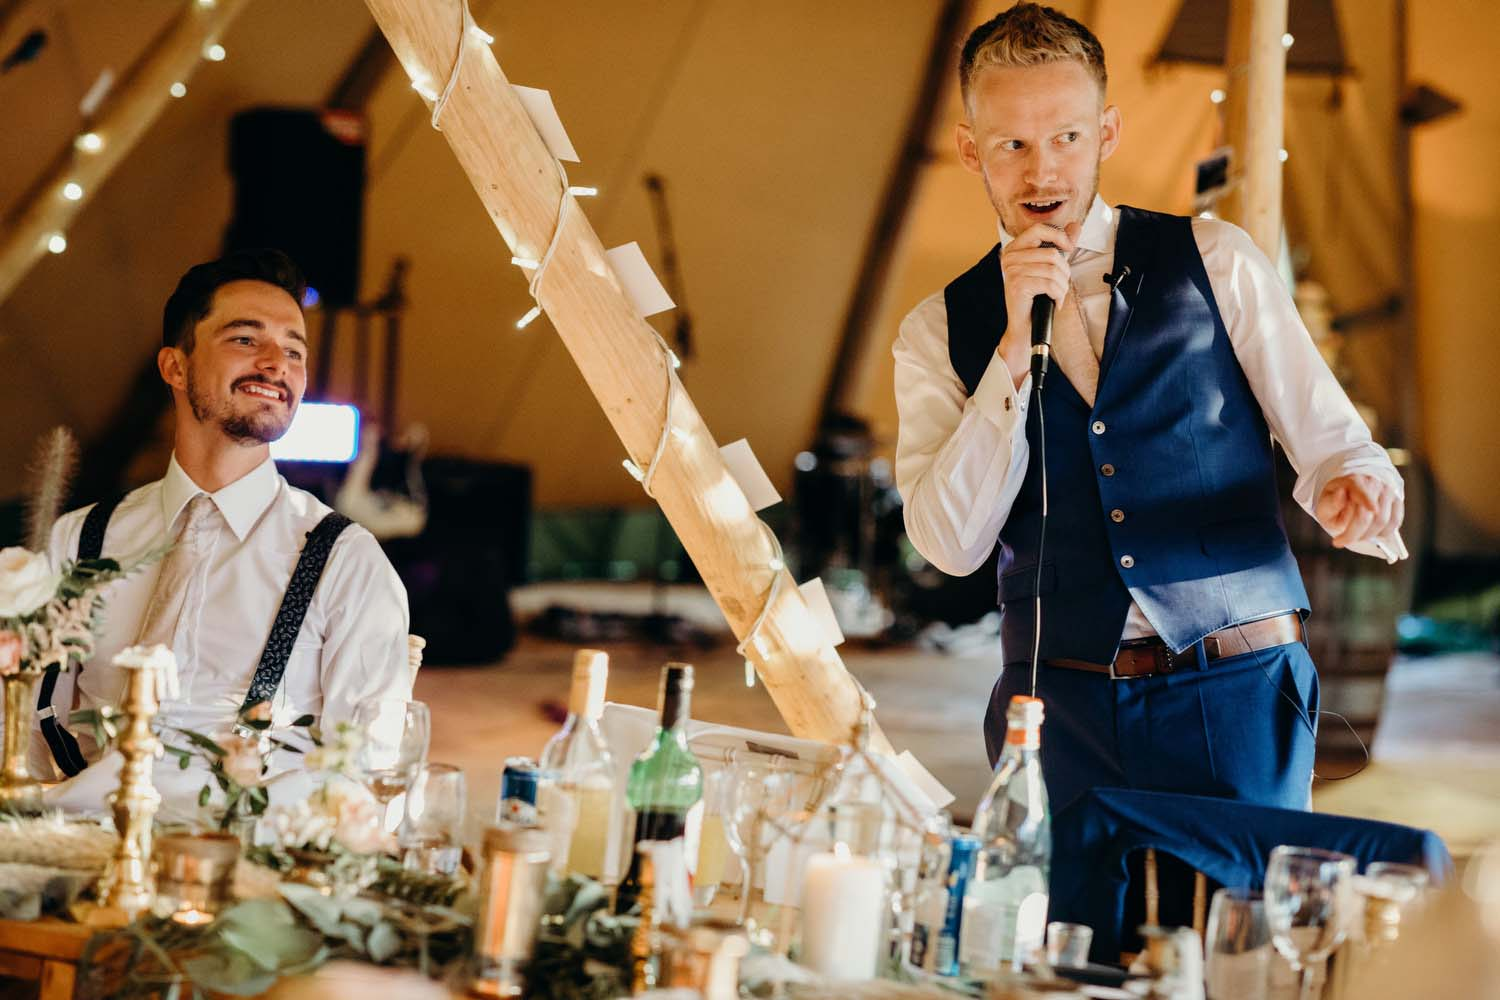 Best man does speech with groom in background